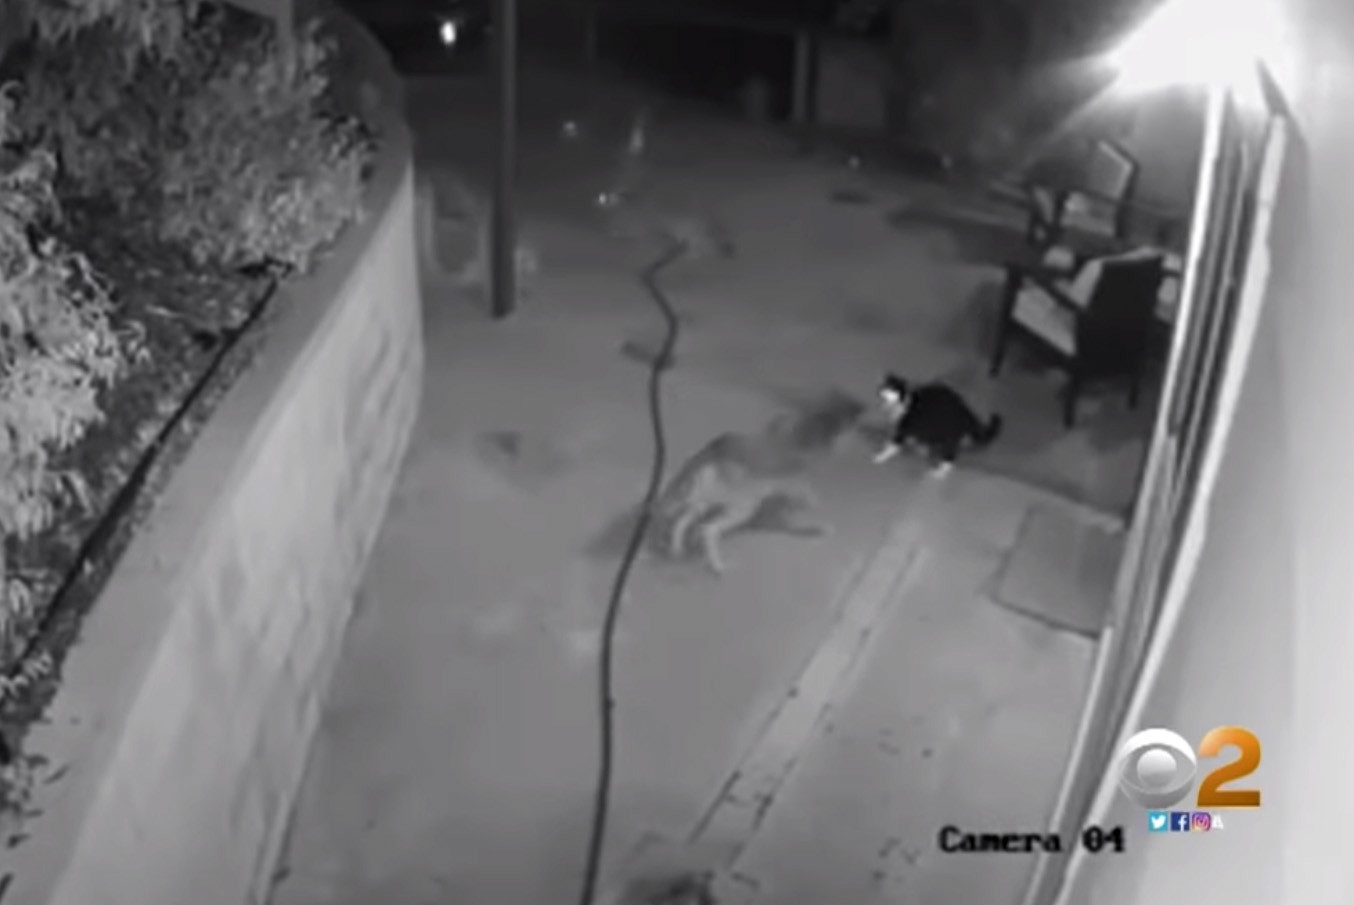 SEE IT: House cat fights off three attacking coyotes at California home